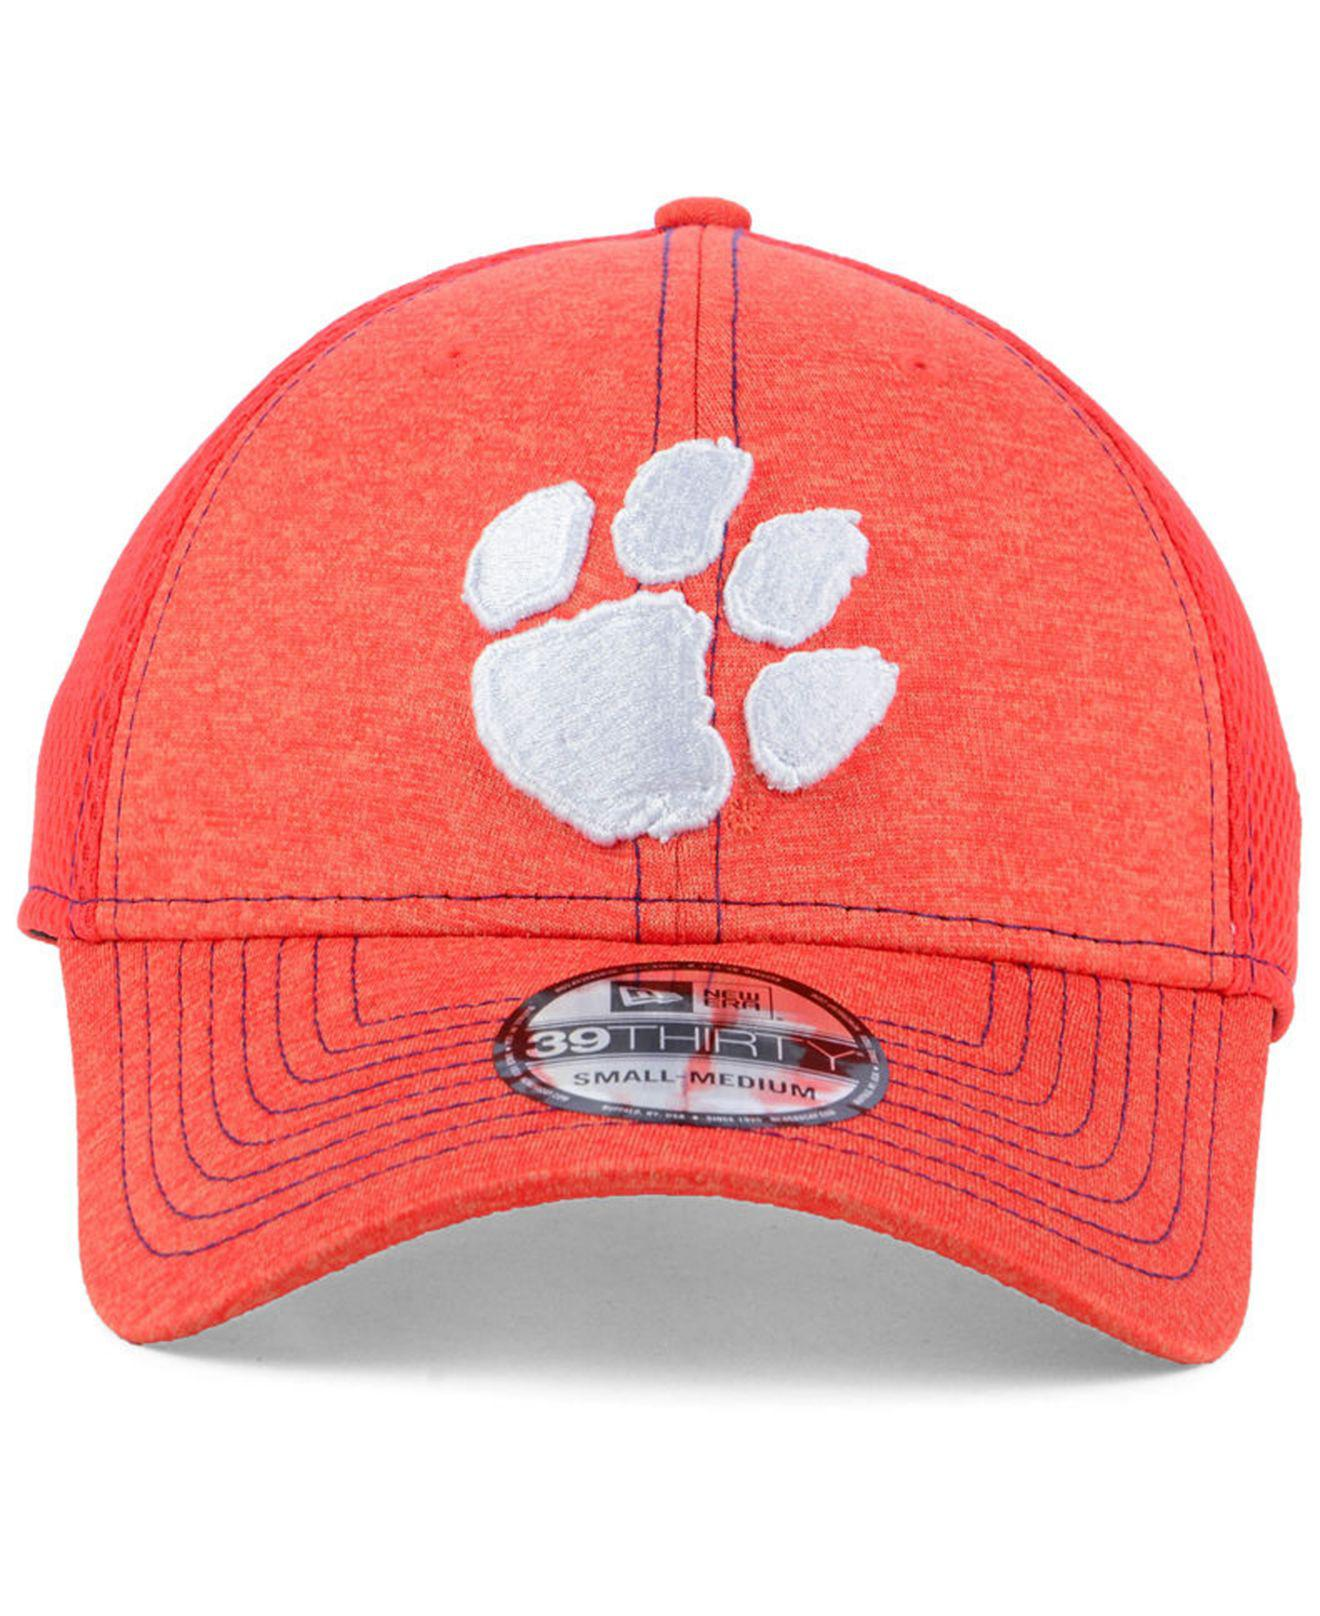 on sale 64168 054dc KTZ Clemson Tigers Classic Shade Neo 39thirty Cap in Orange for Men - Lyst